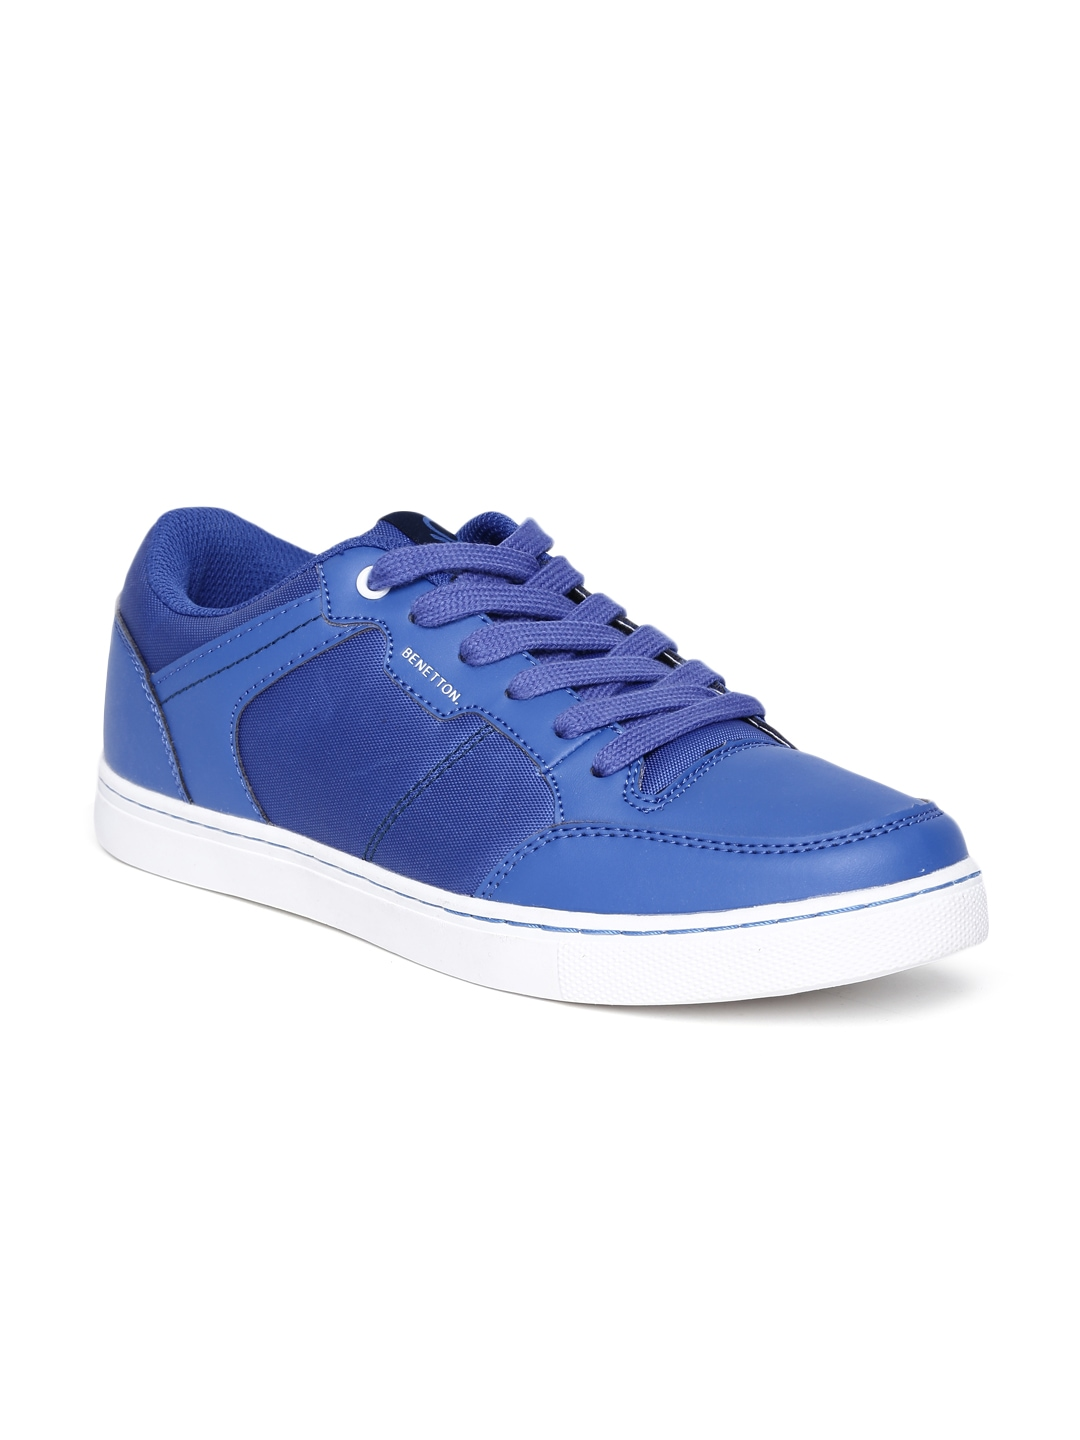 myntra united colors of benetton blue casual shoes